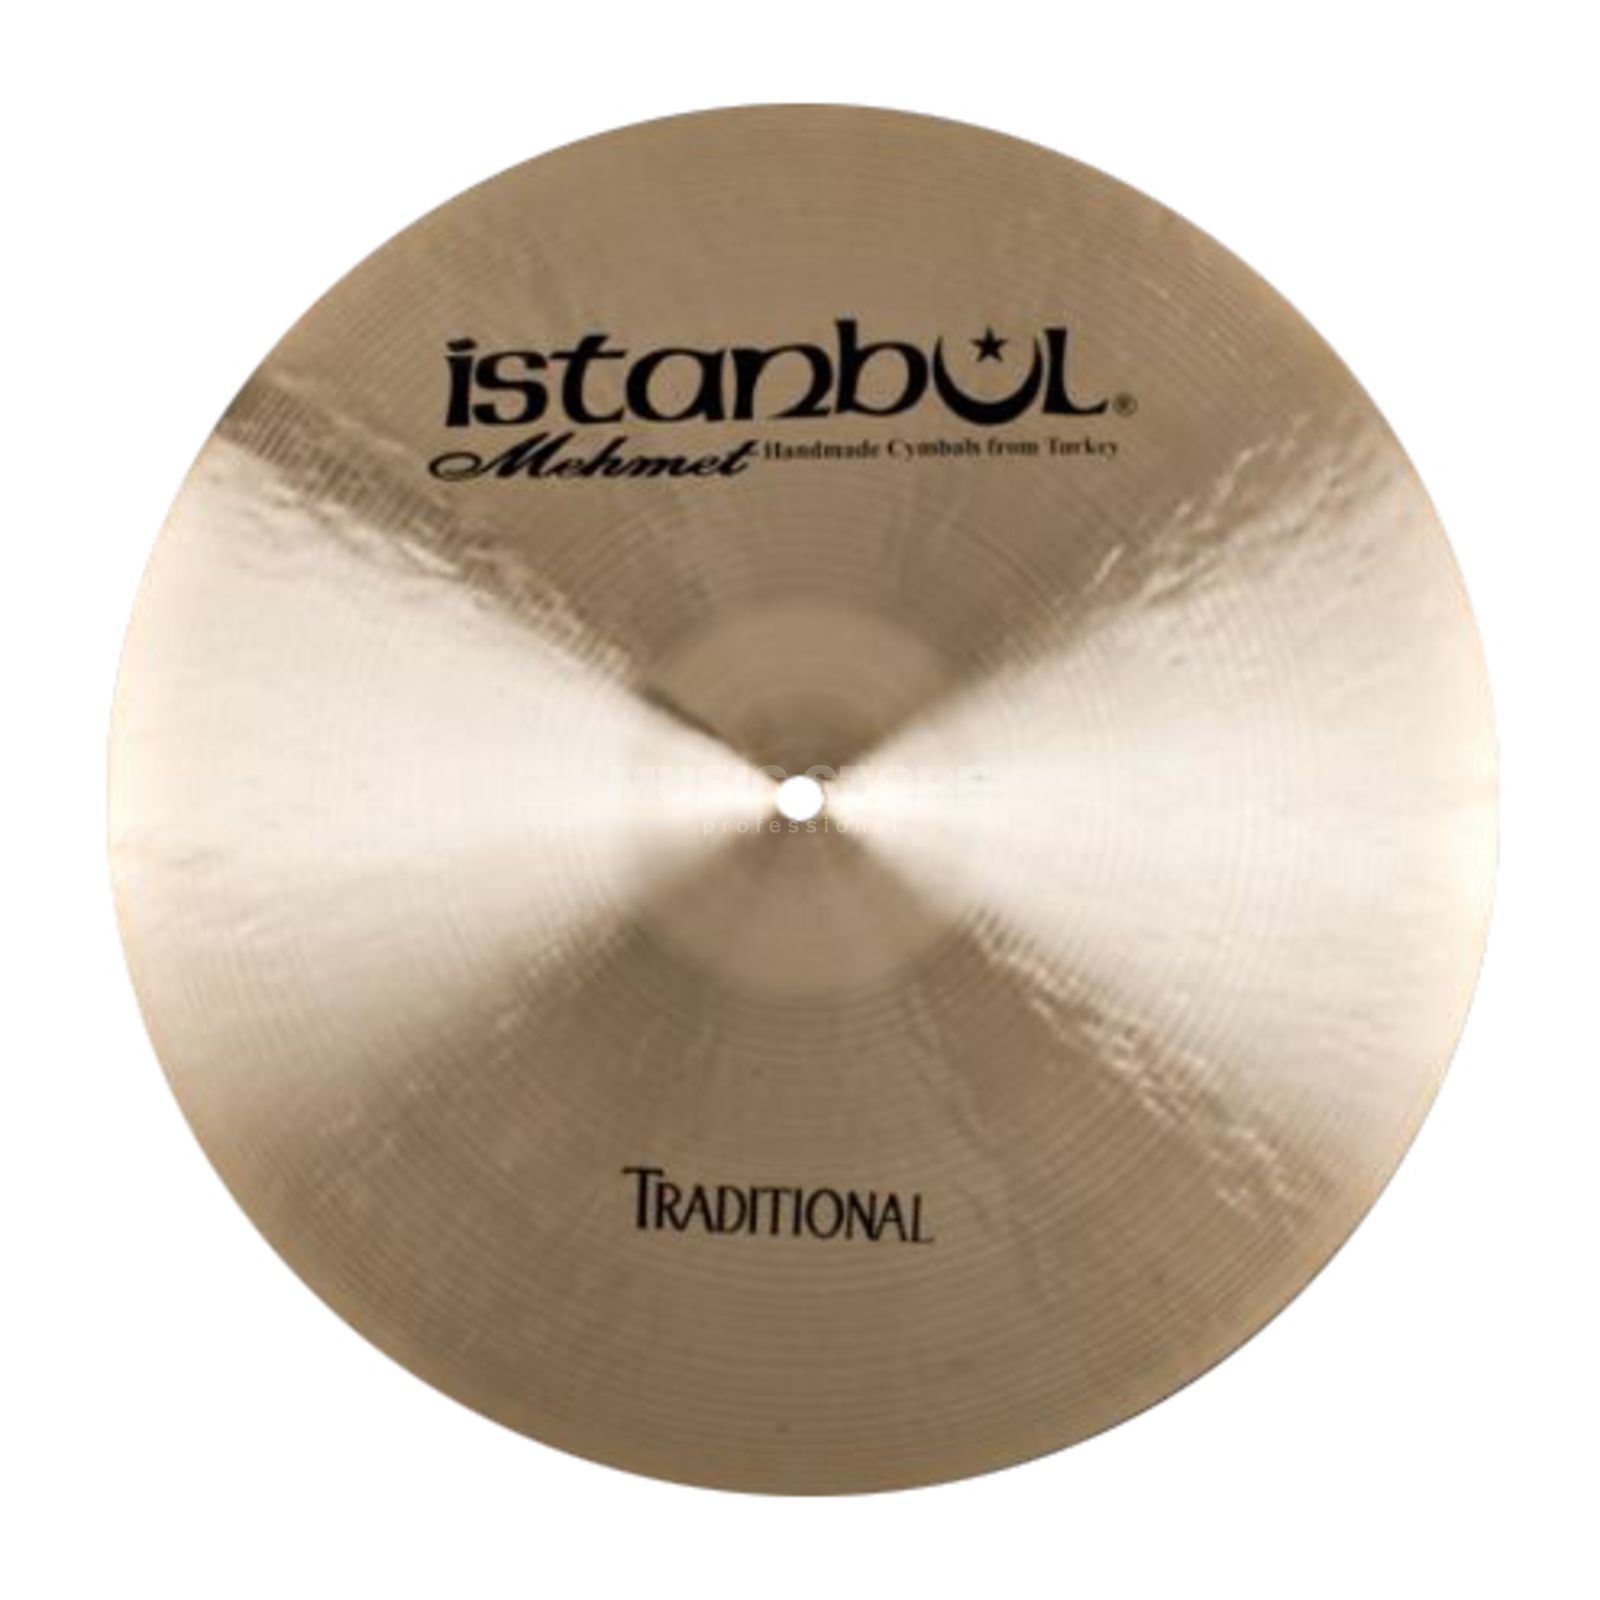 "Istanbul Traditional Medium Crash 18"", CM19 Immagine prodotto"